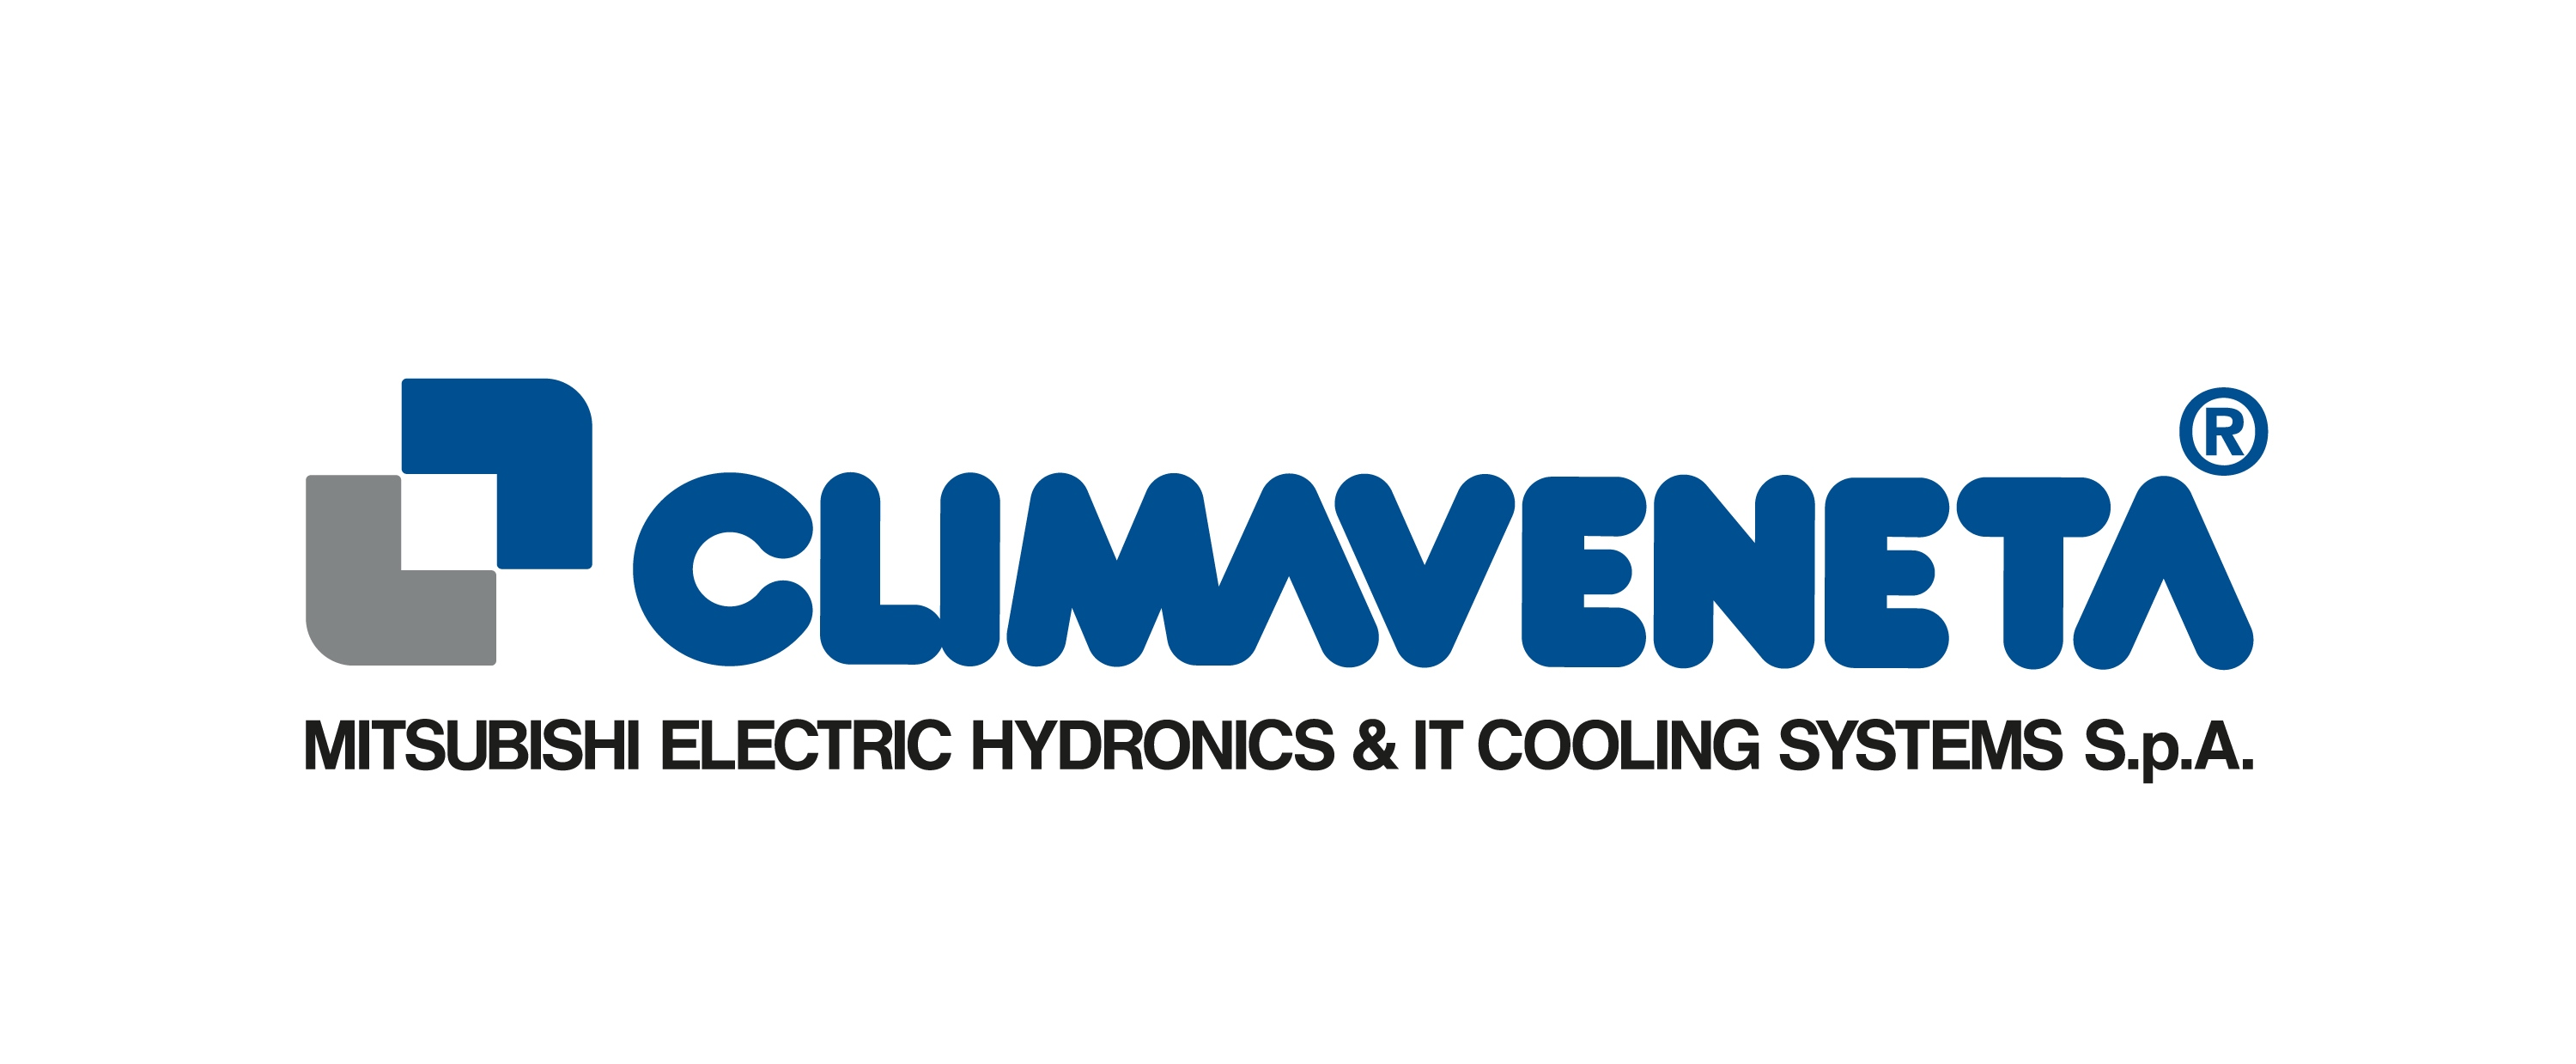 Climaveneta - новый брэнд Mitsubishi Electric